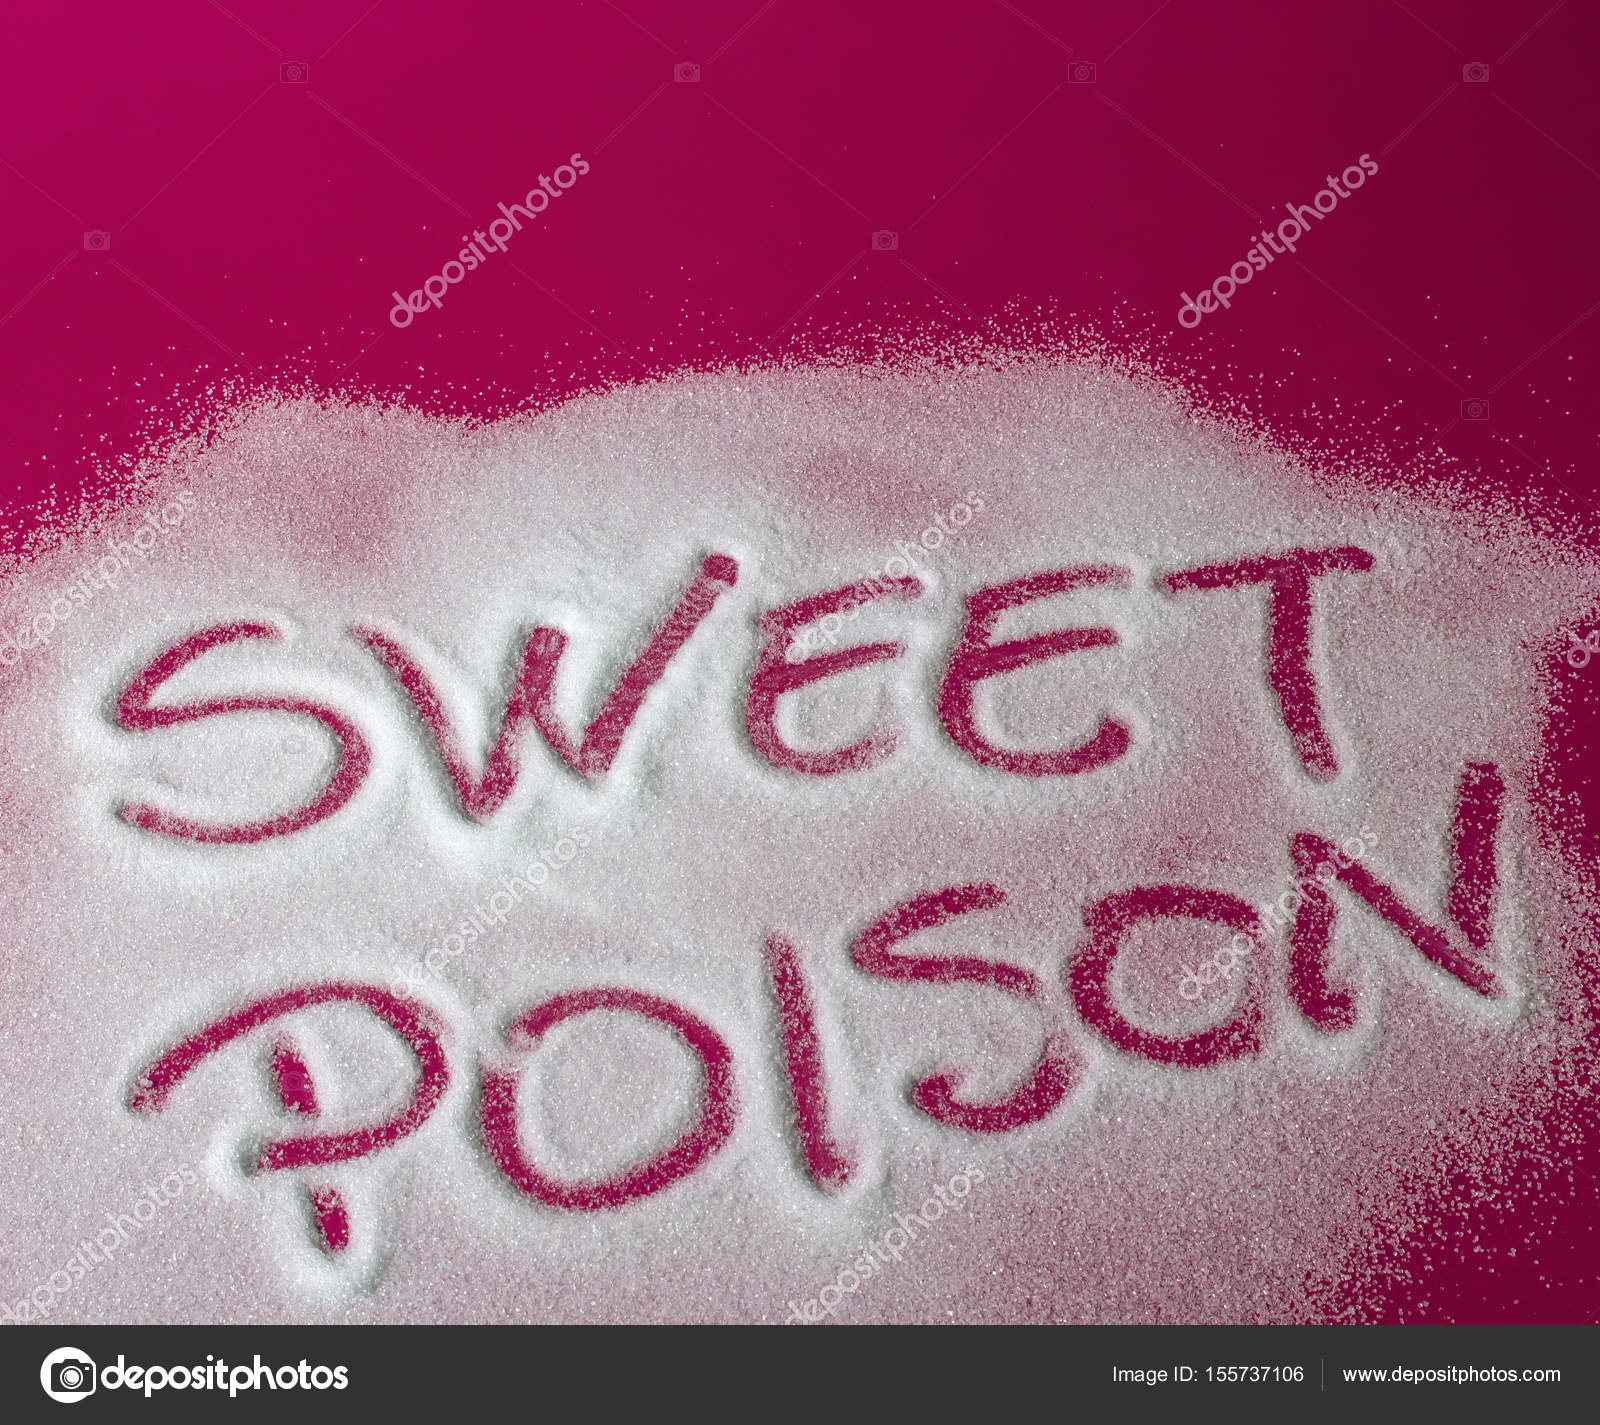 SUGAR THE SWEET POISON EBOOK DOWNLOAD